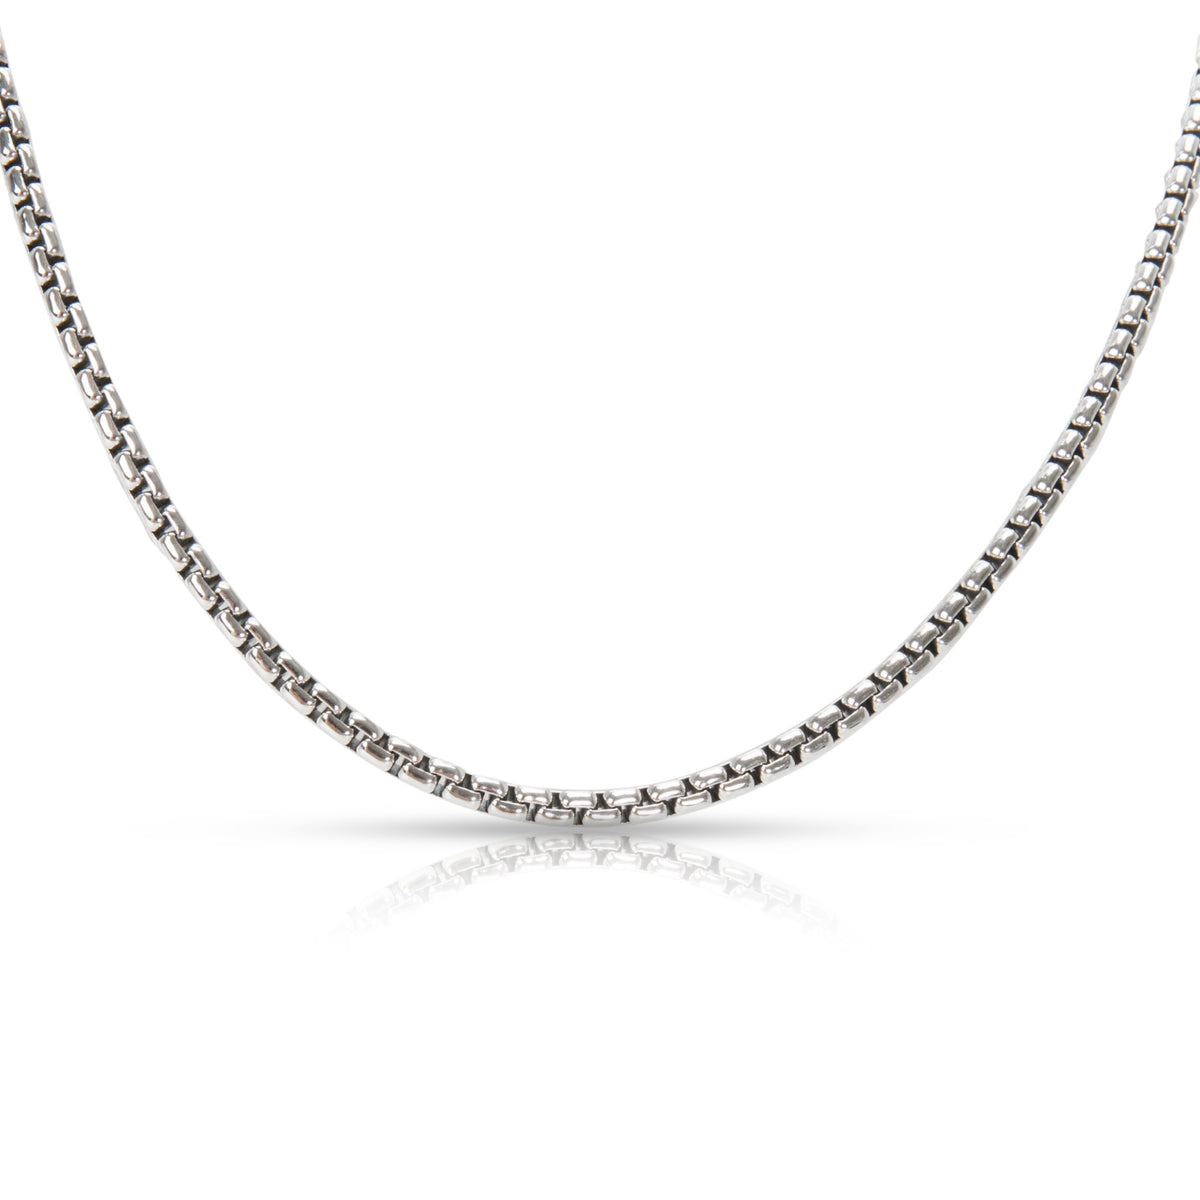 "David Yurman 17"" 2.6 mm Box Chain in Sterling Silver & 14K Yellow Gold"